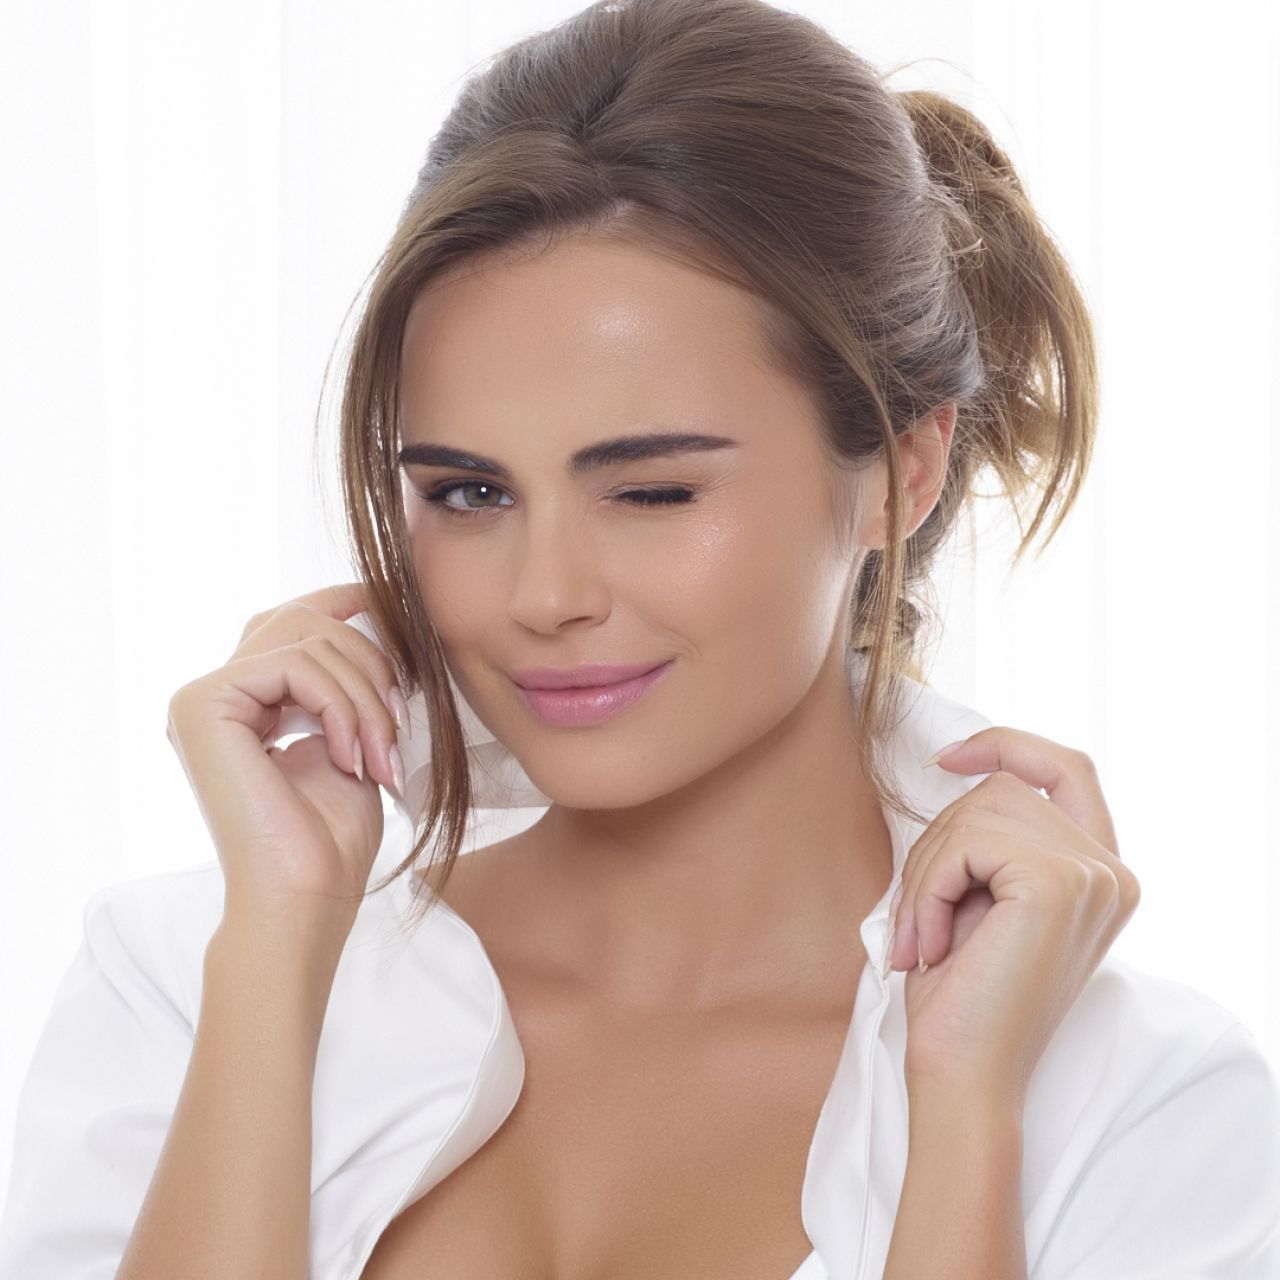 Xenia Deli photos